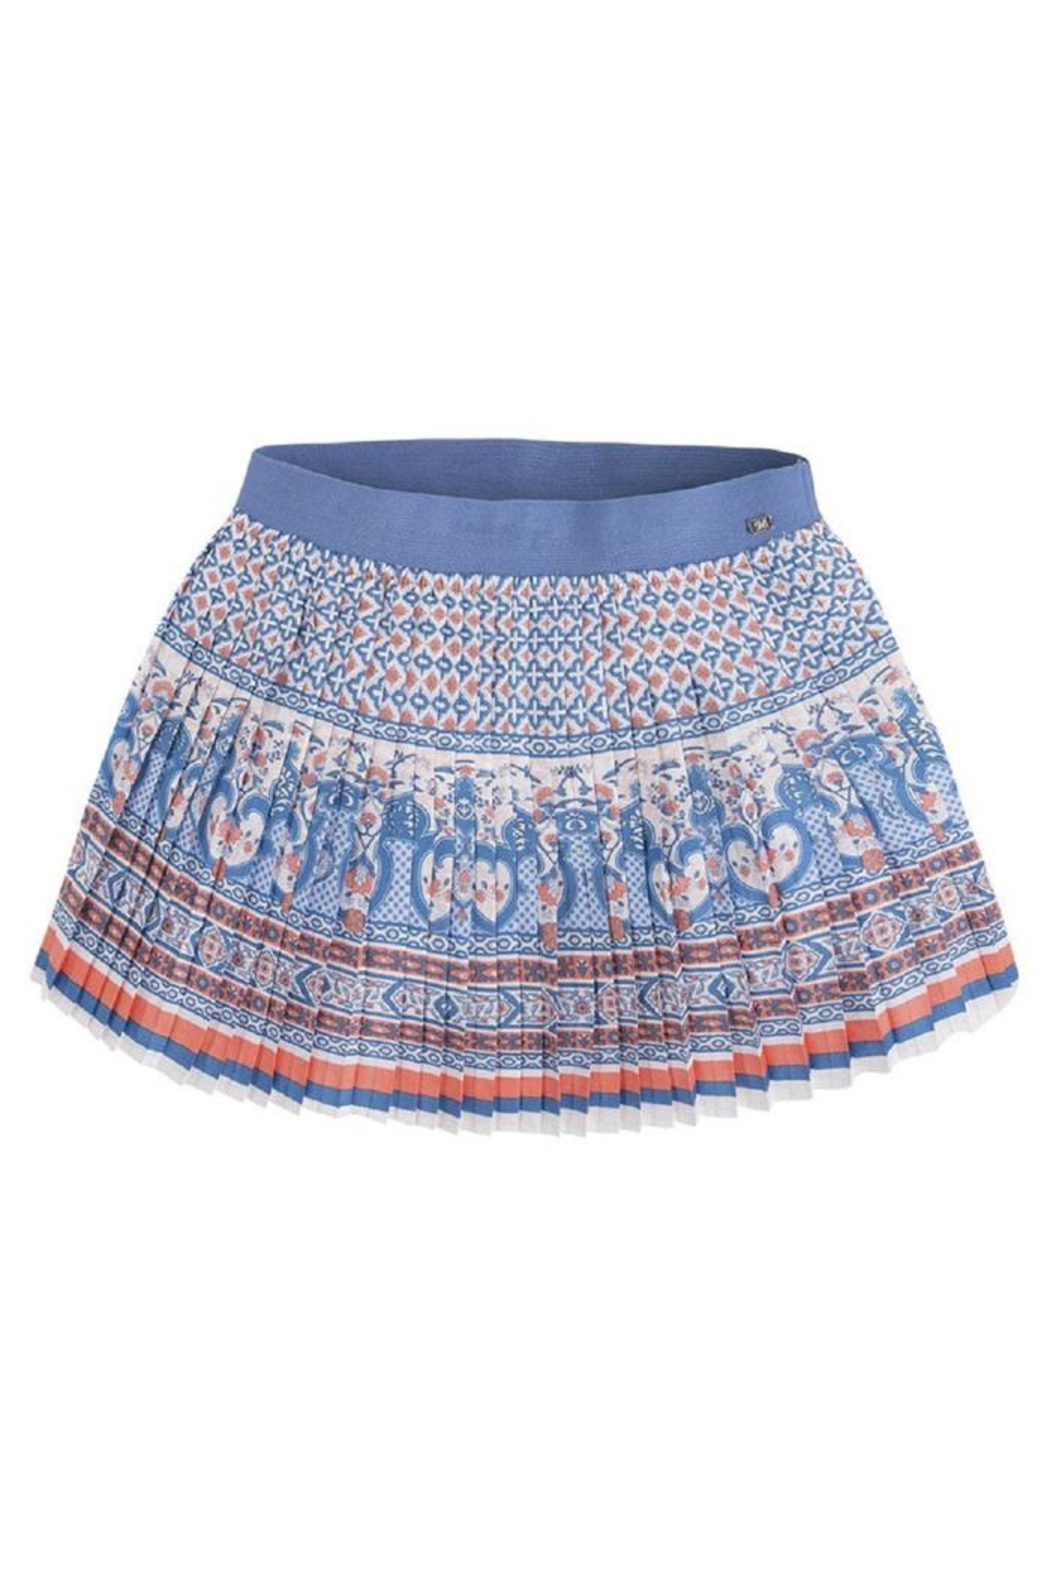 Mayoral Pleated Printed Skirt - Main Image